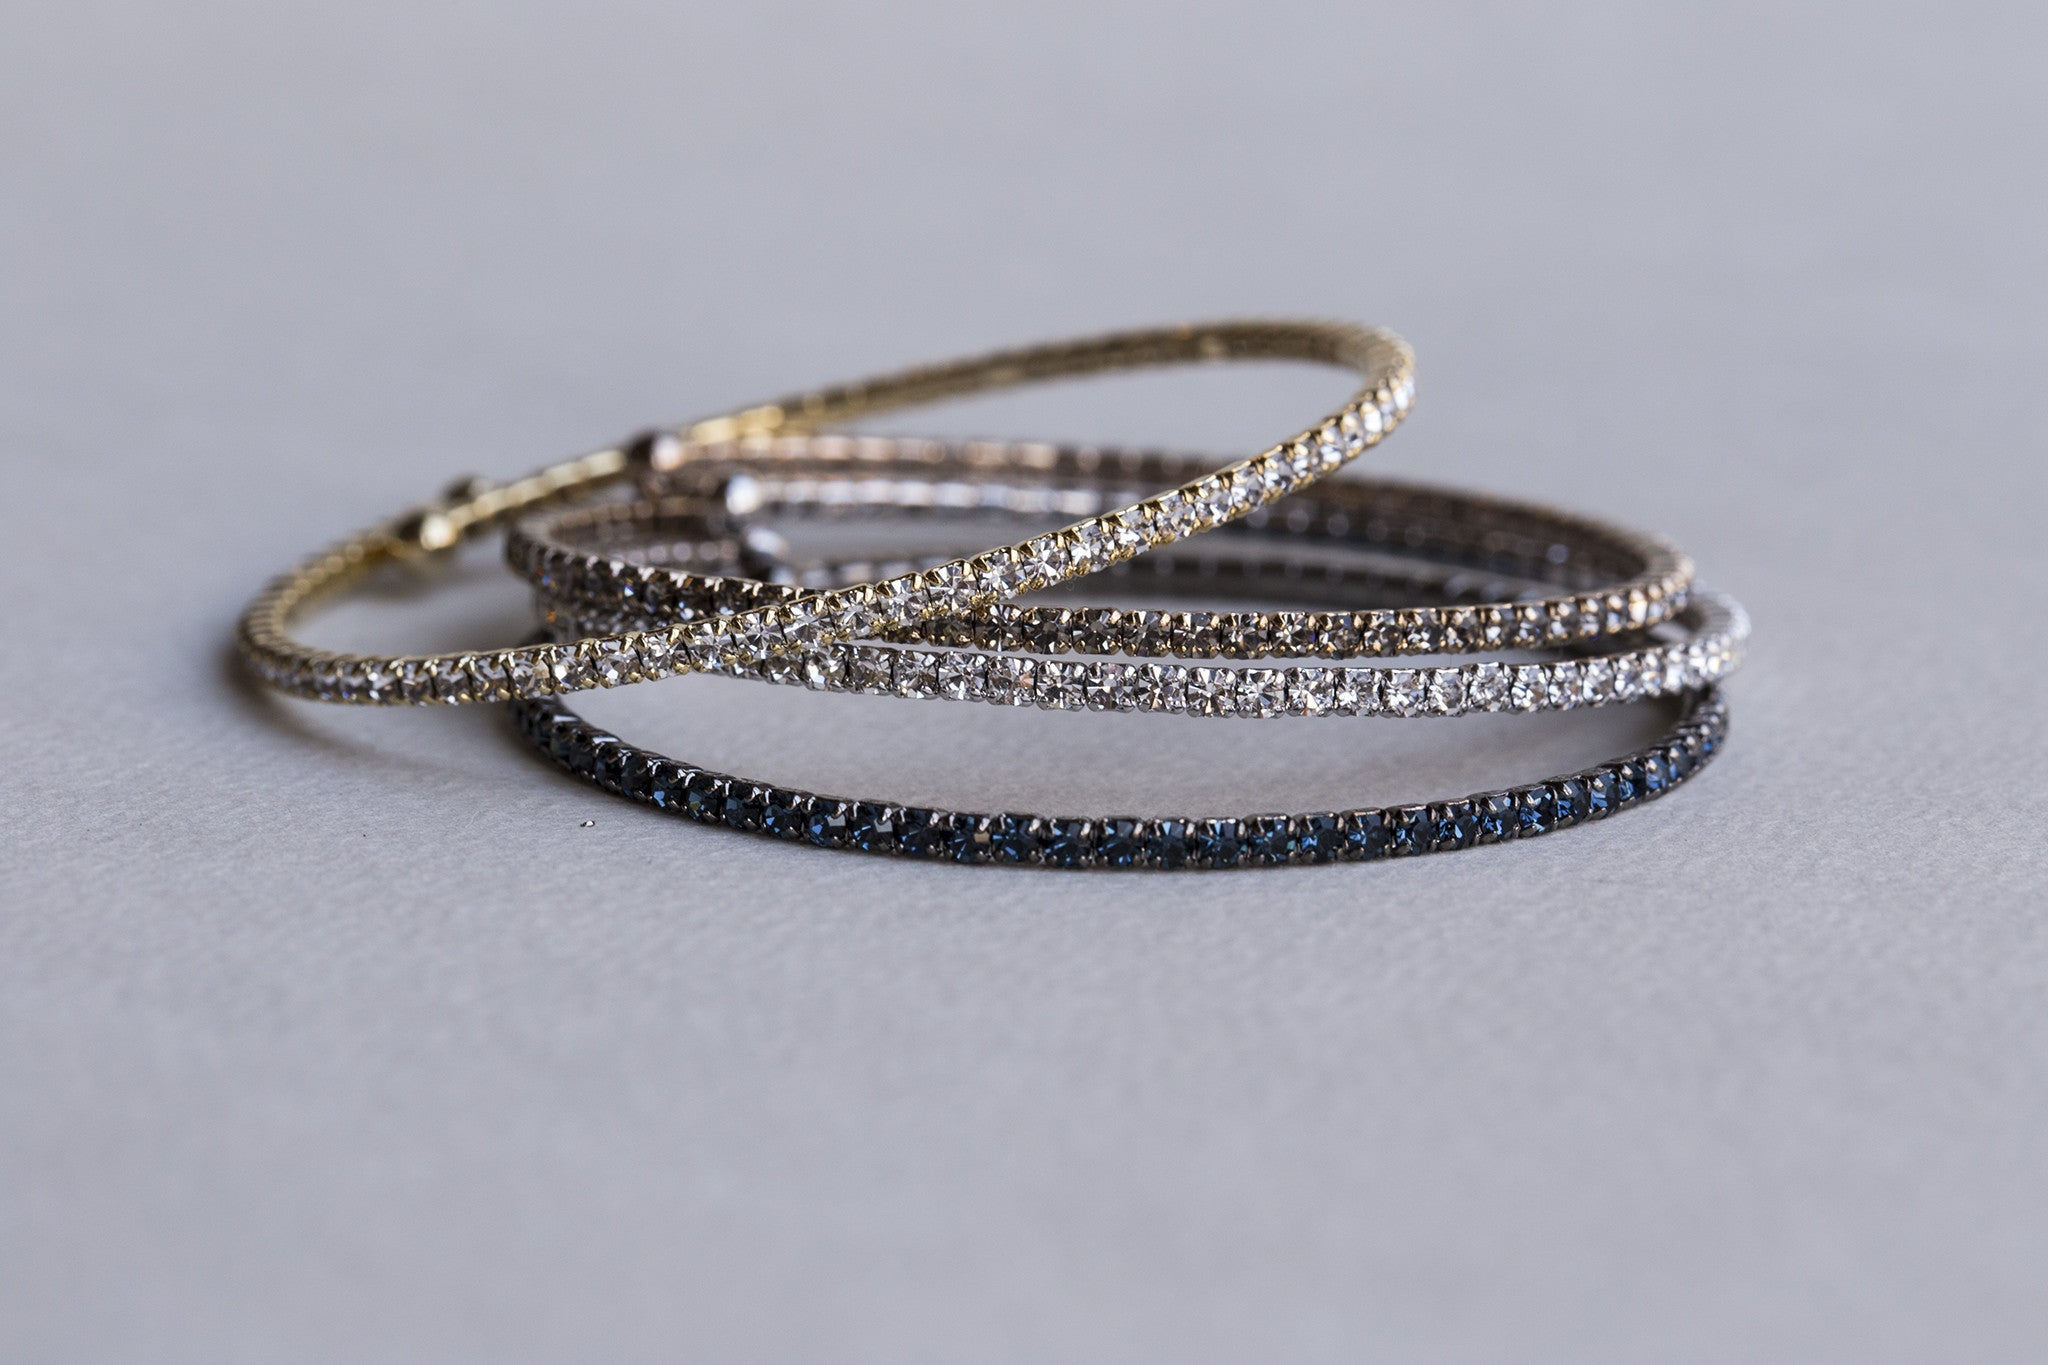 flexible and sparkly diamante bangles - singles ones also available on feltlondon.com